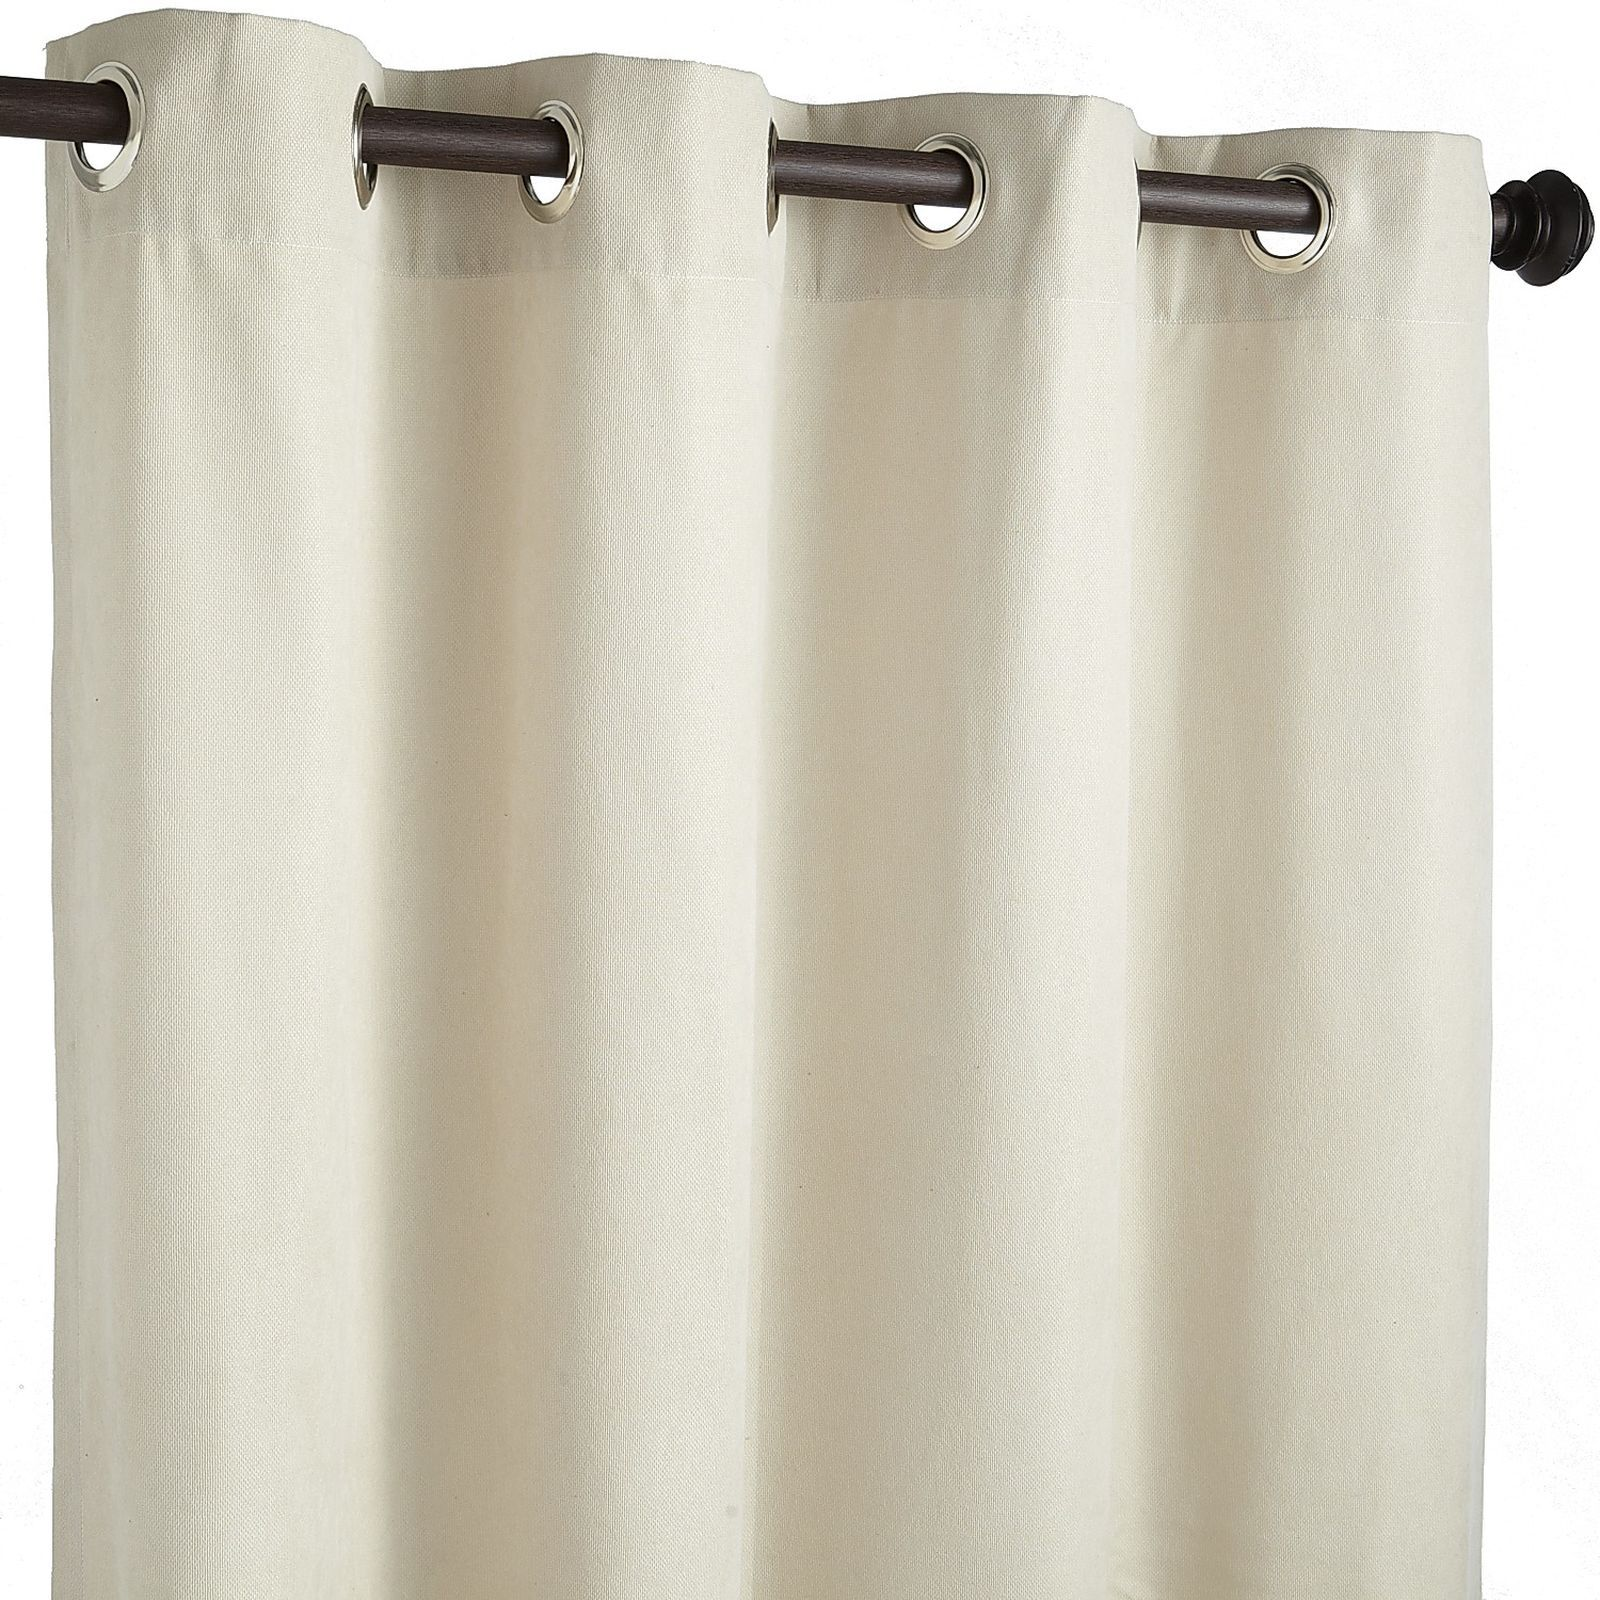 Our Calliope Curtains Are Made Of The Same Material As Our Outdoor